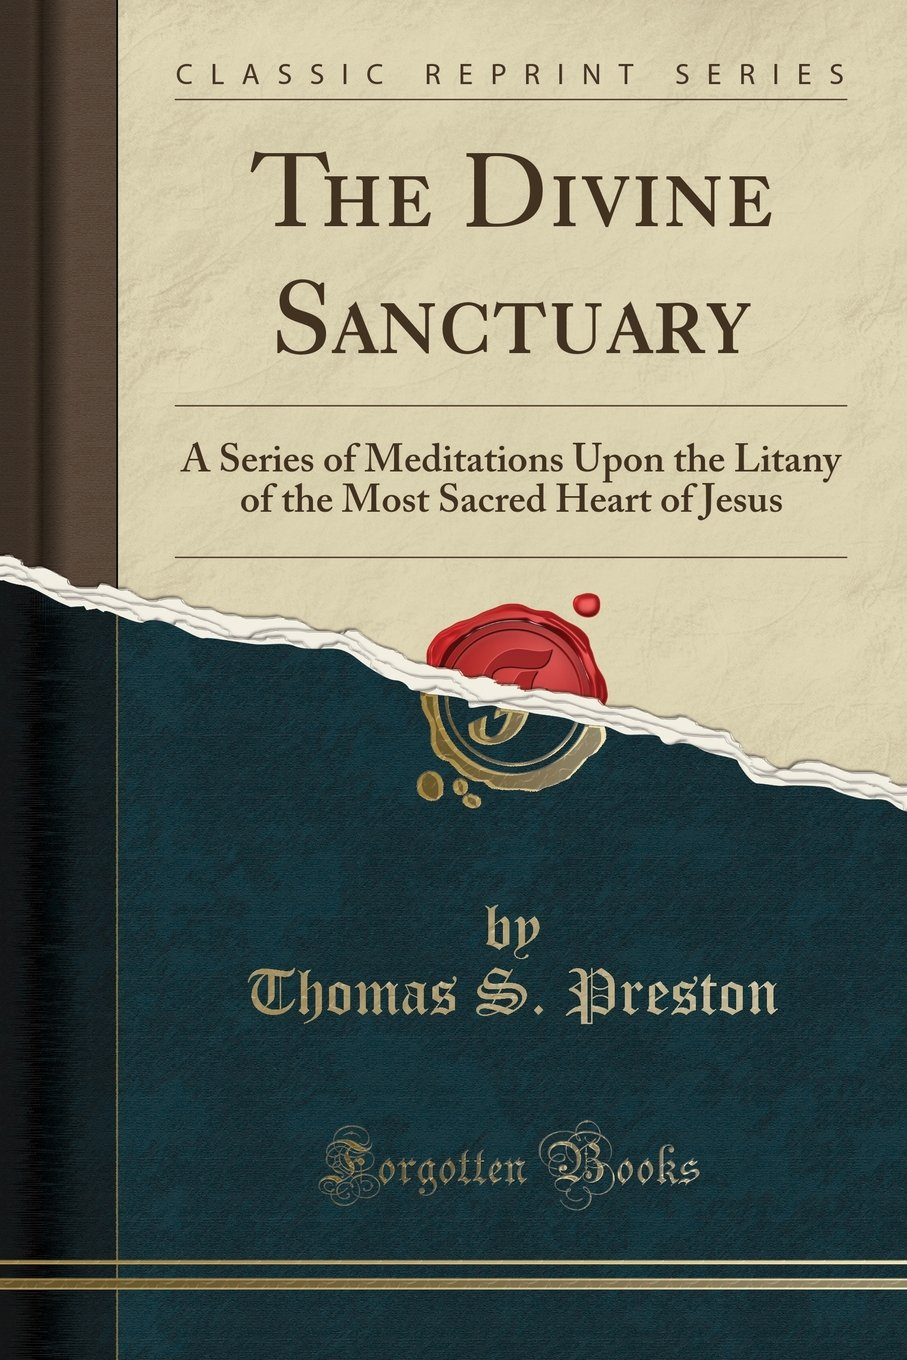 The Divine Sanctuary: A Series of Meditations Upon the Litany of the Most Sacred Heart of Jesus (Classic Reprint)